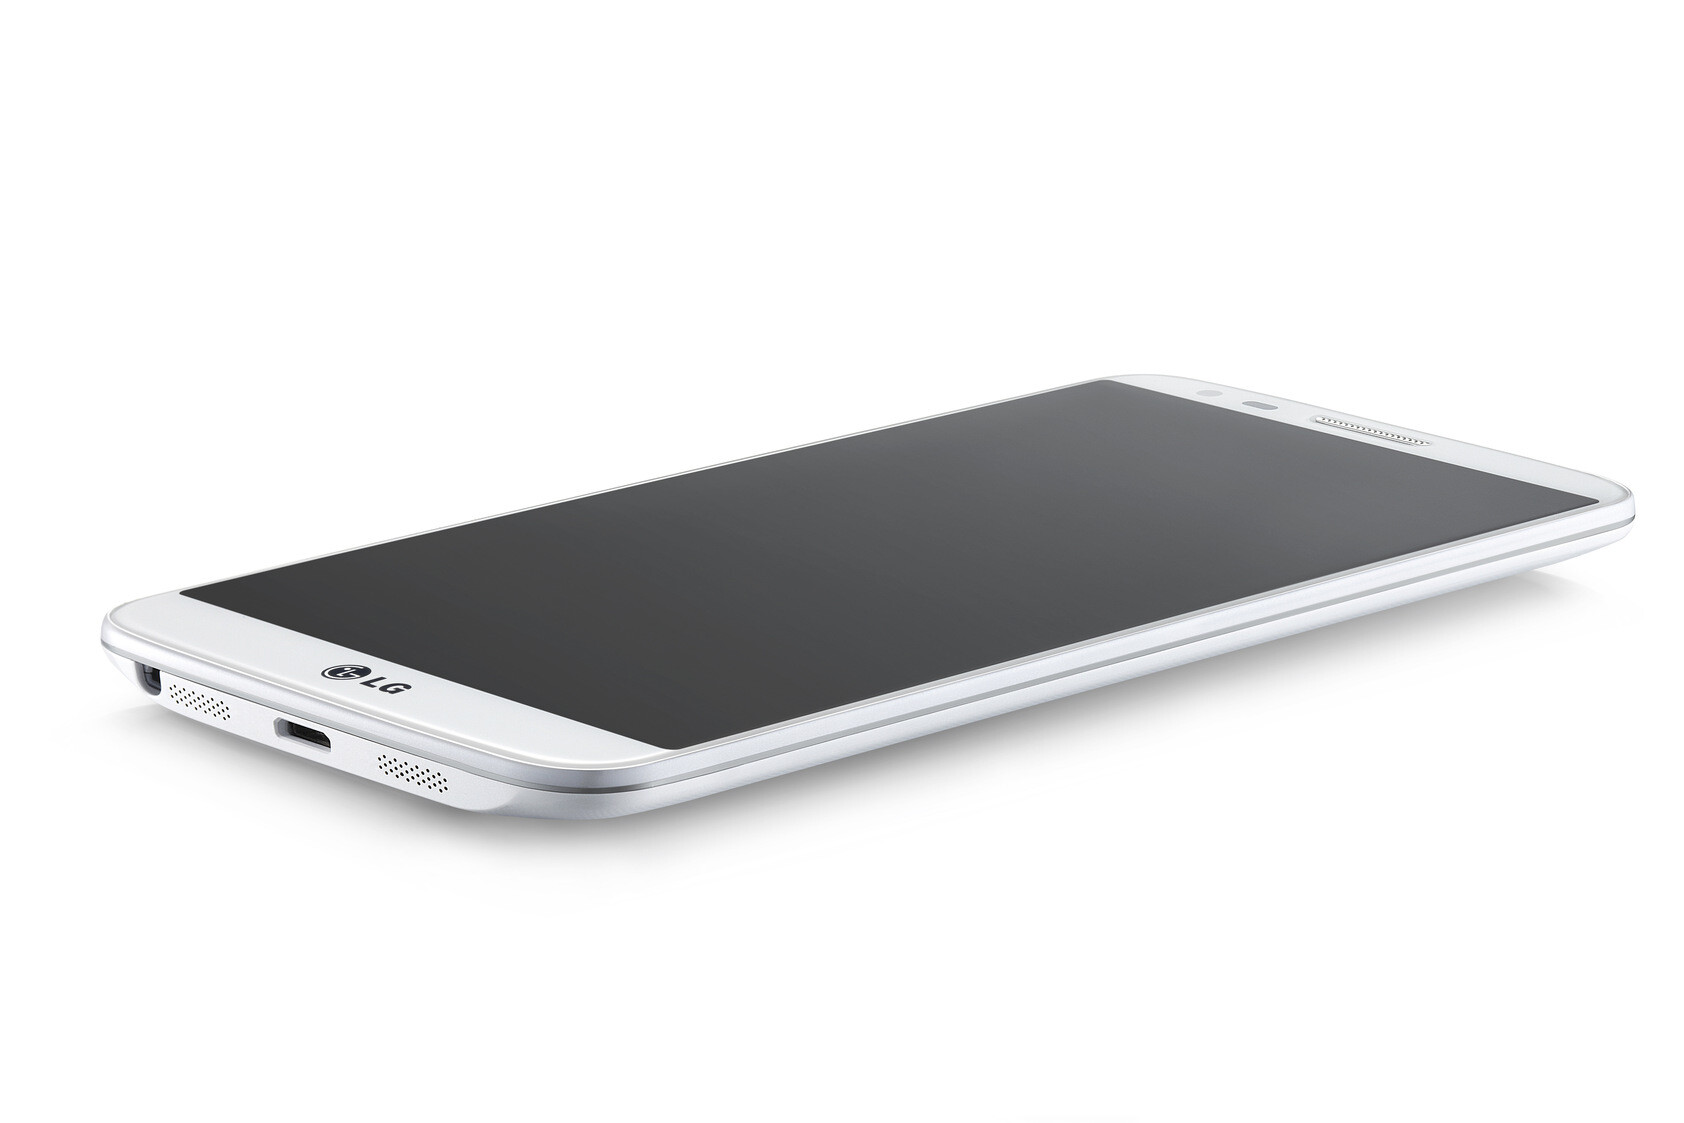 LG G2 is officially announced with Snapdragon 800, 5.2 ...